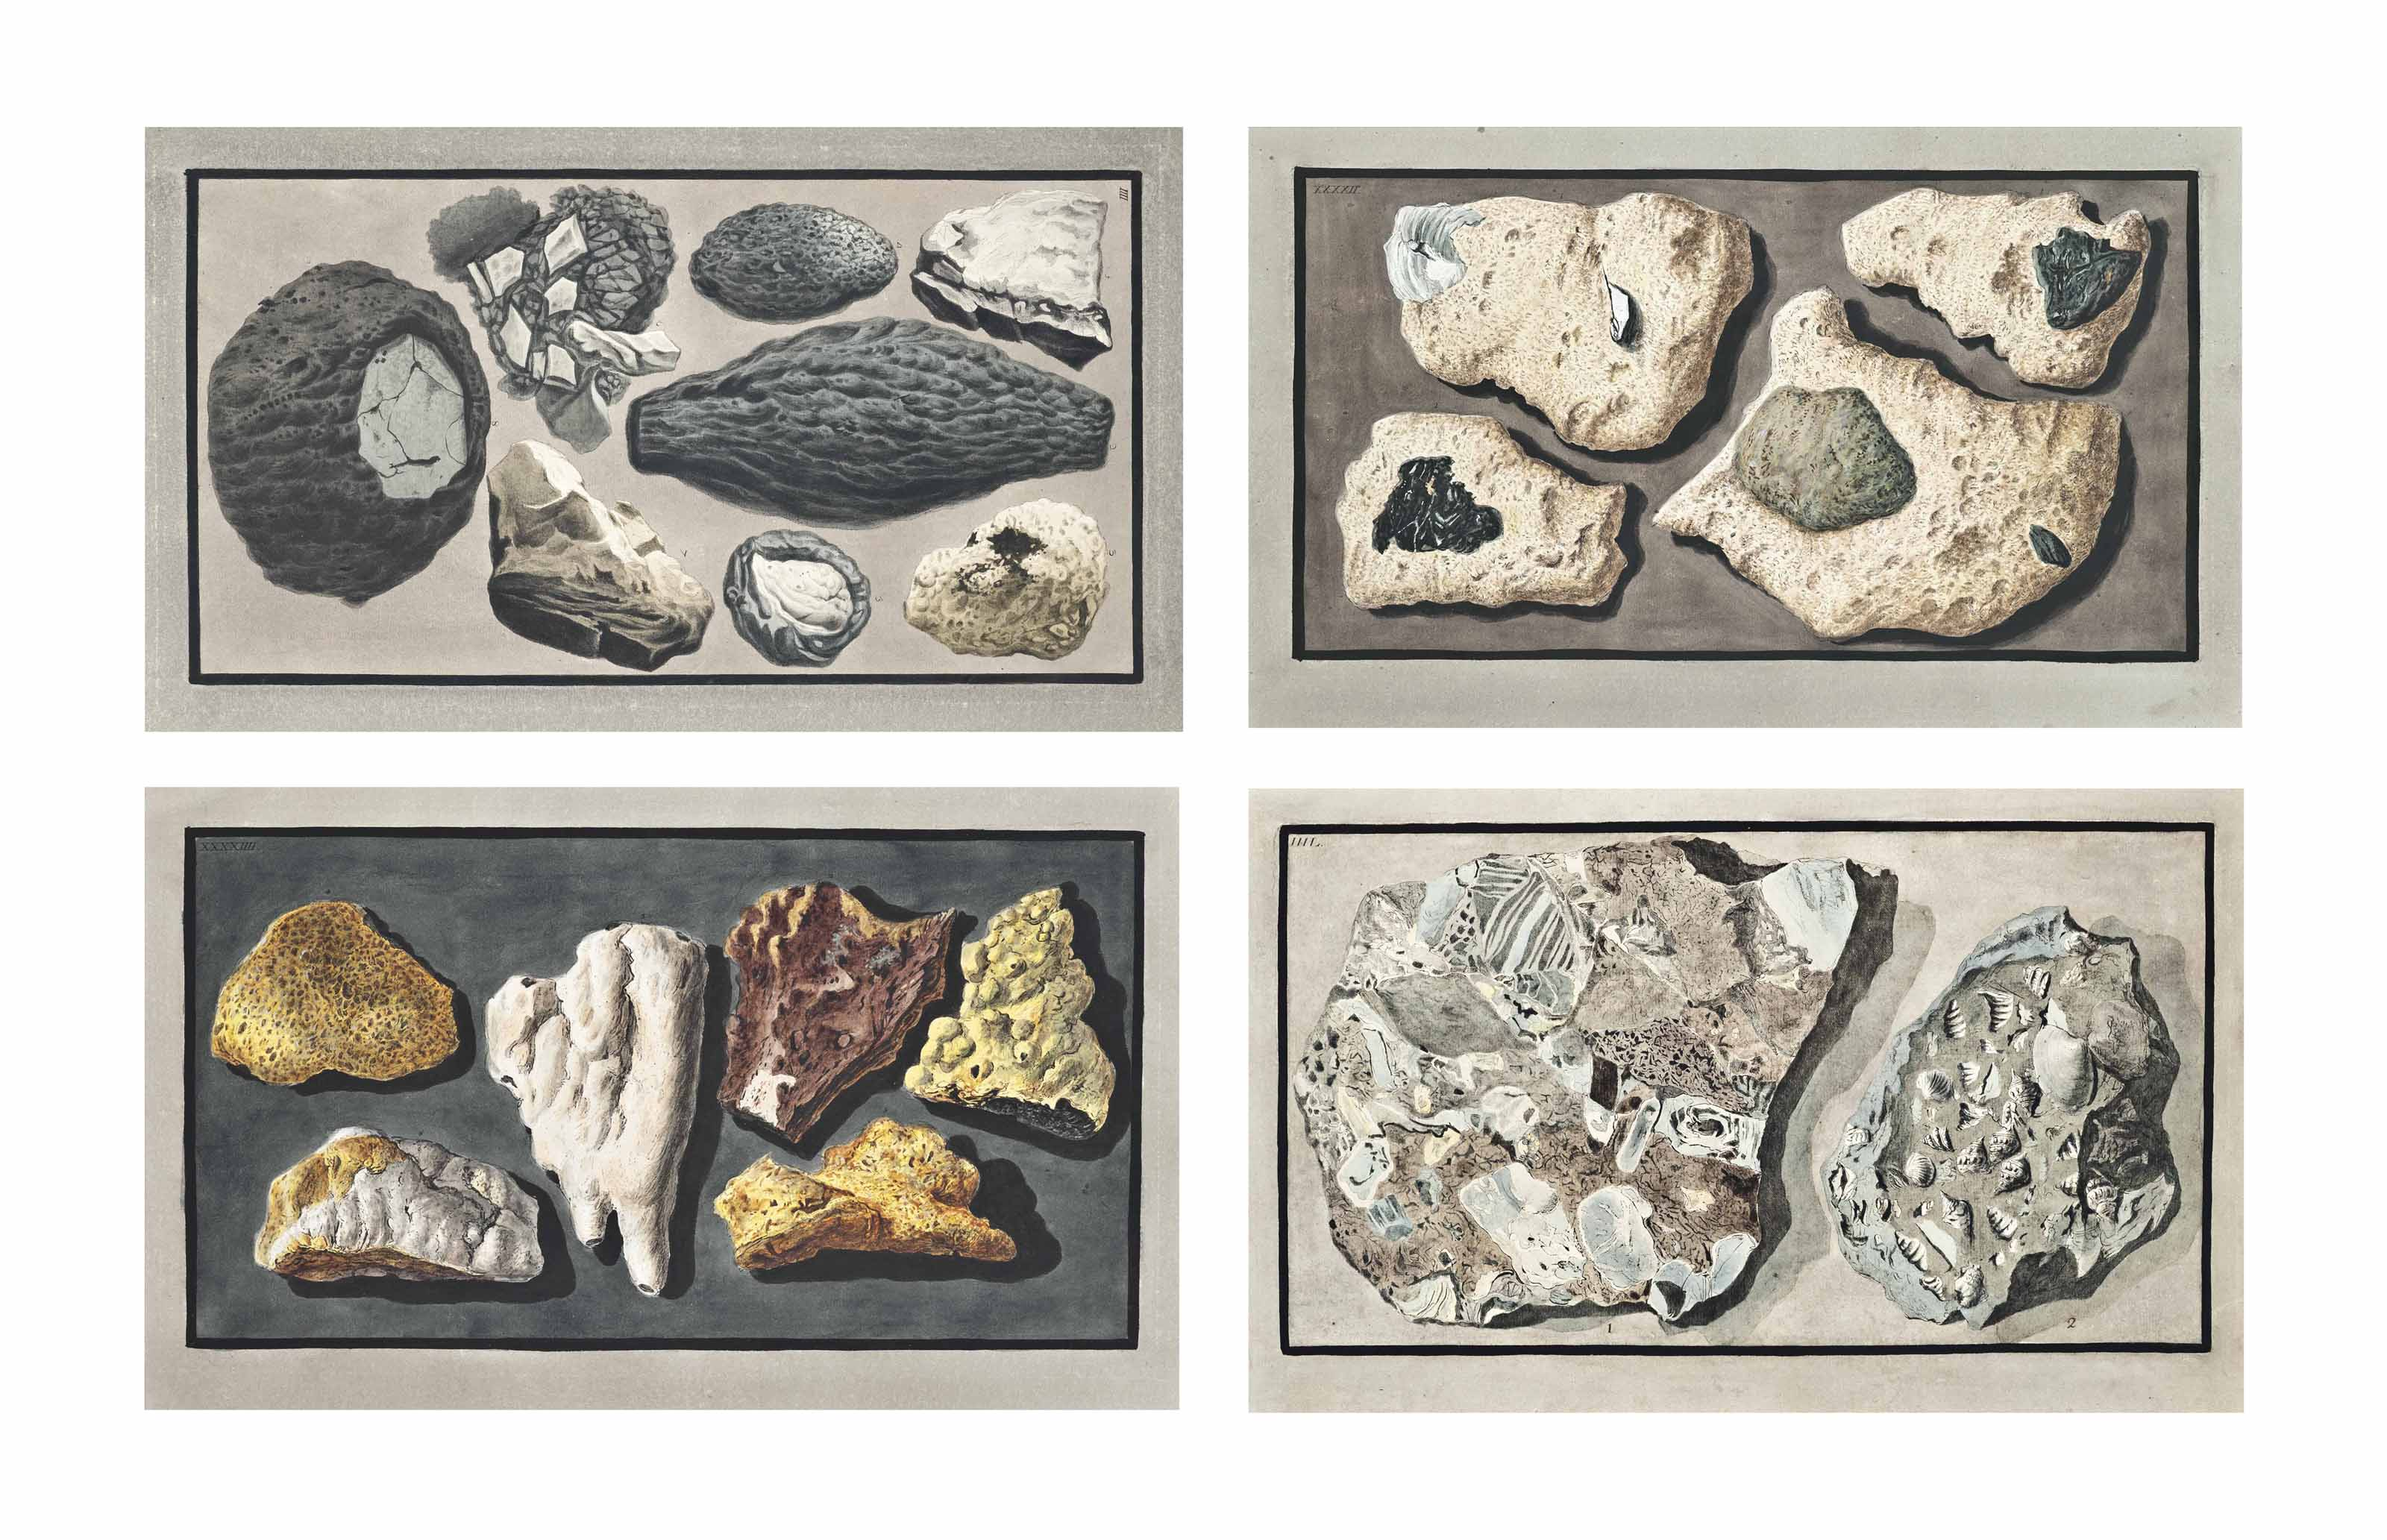 FOUR ITALIAN HAND-COLOURED ENGRAVINGS OF VOLCANIC AND GEOLOGICAL SPECIMENS